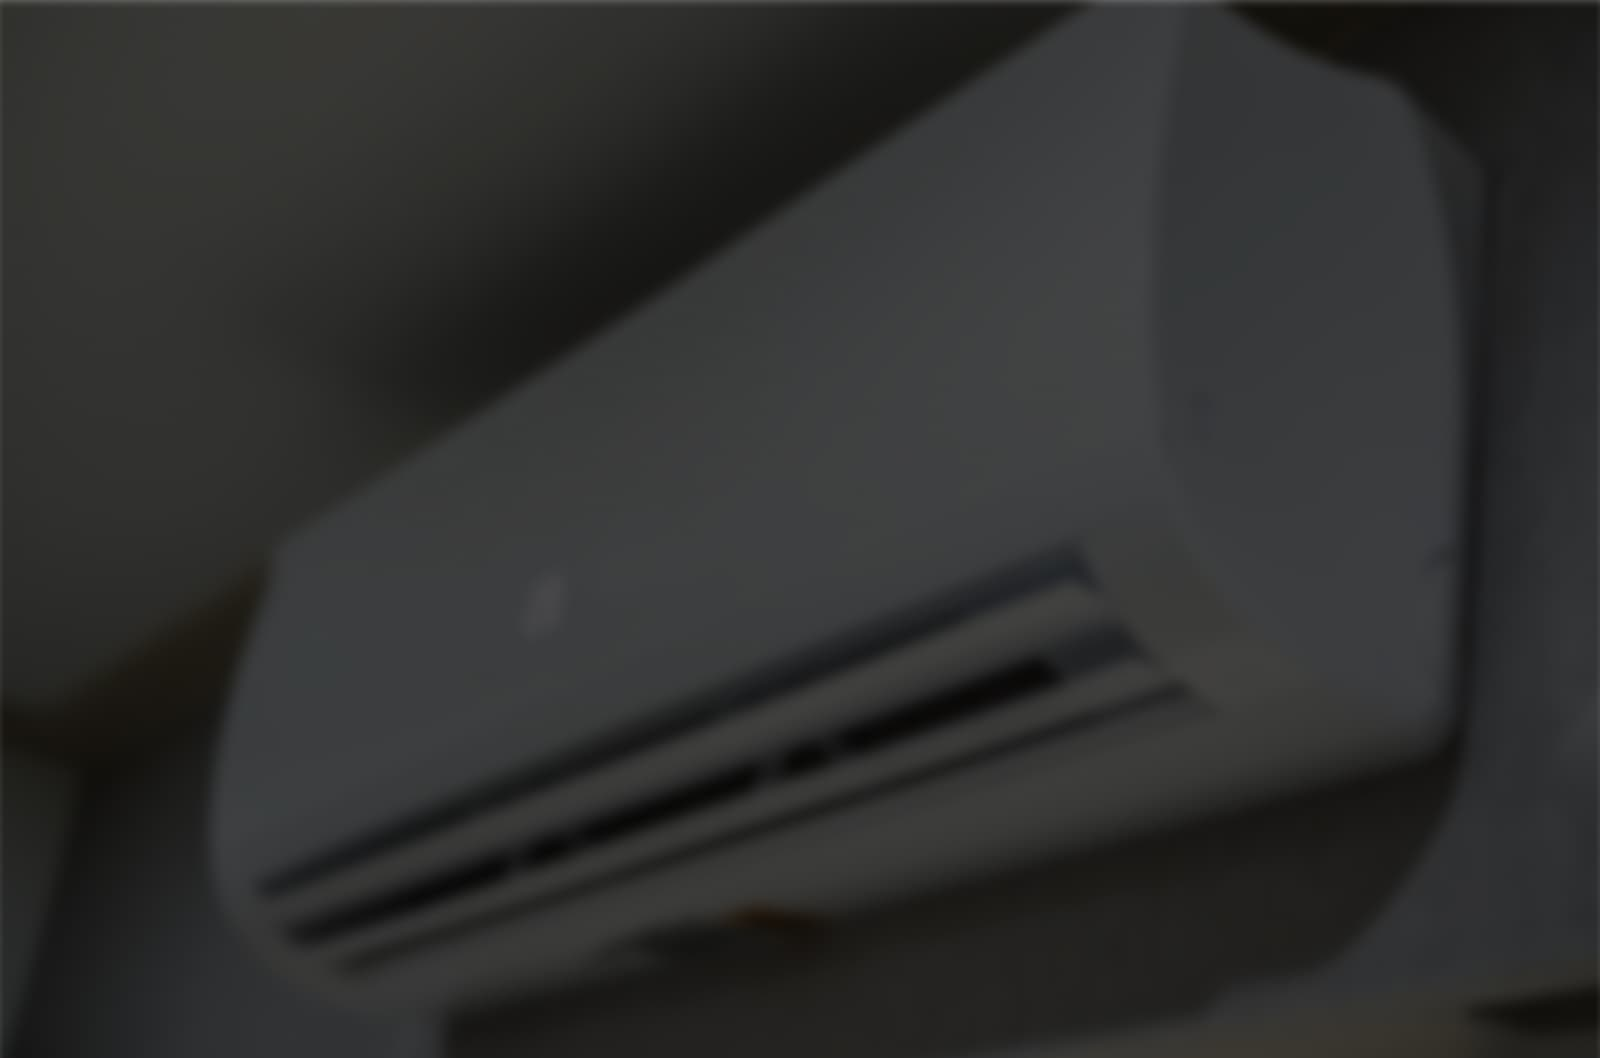 air conditioning on the wall